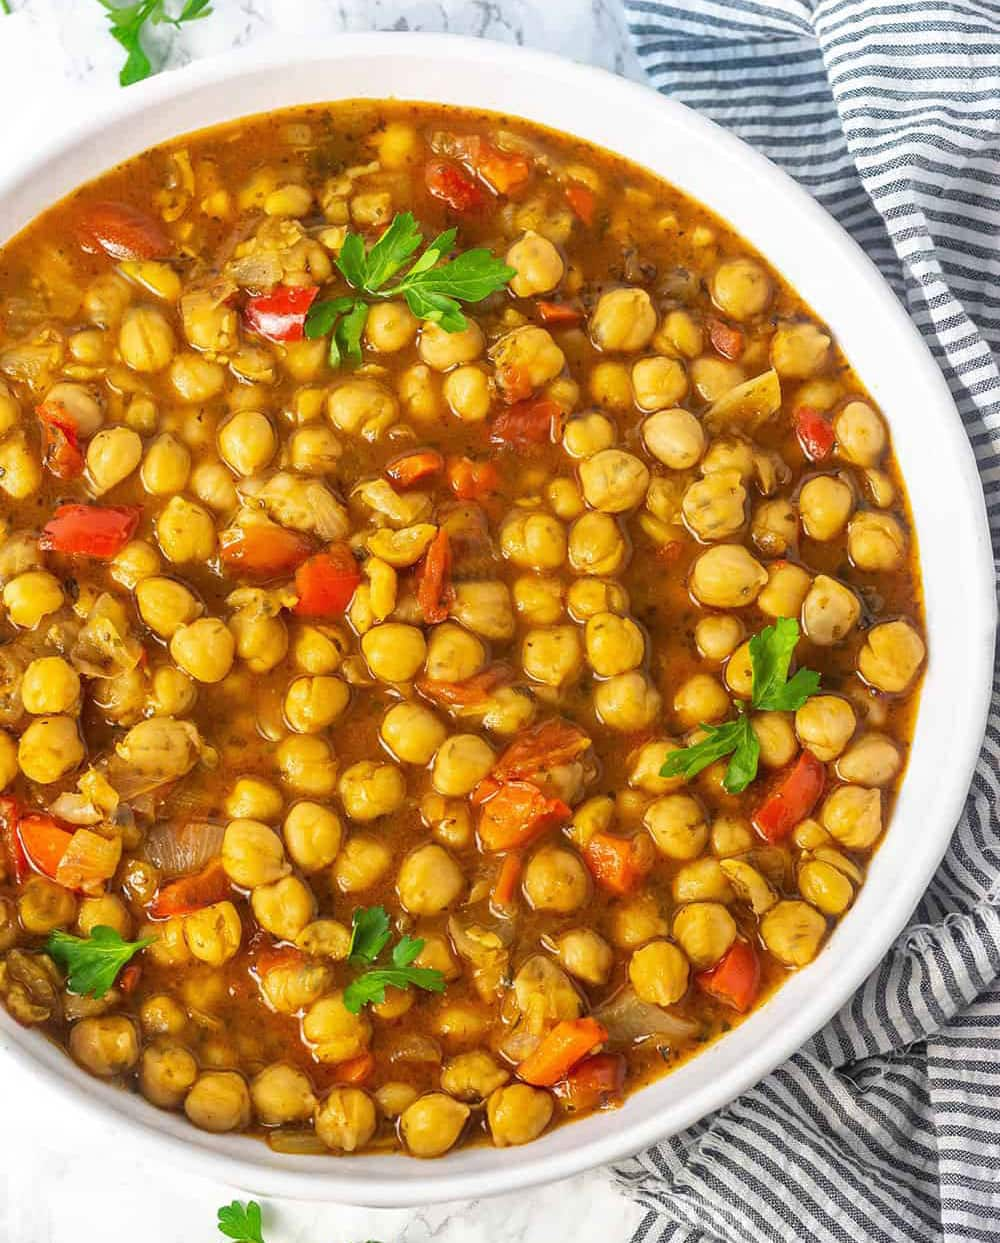 Vegan Chickpea Stew overlay in a white bowl. Cooked with tomatoes, bell pepper and carrots.